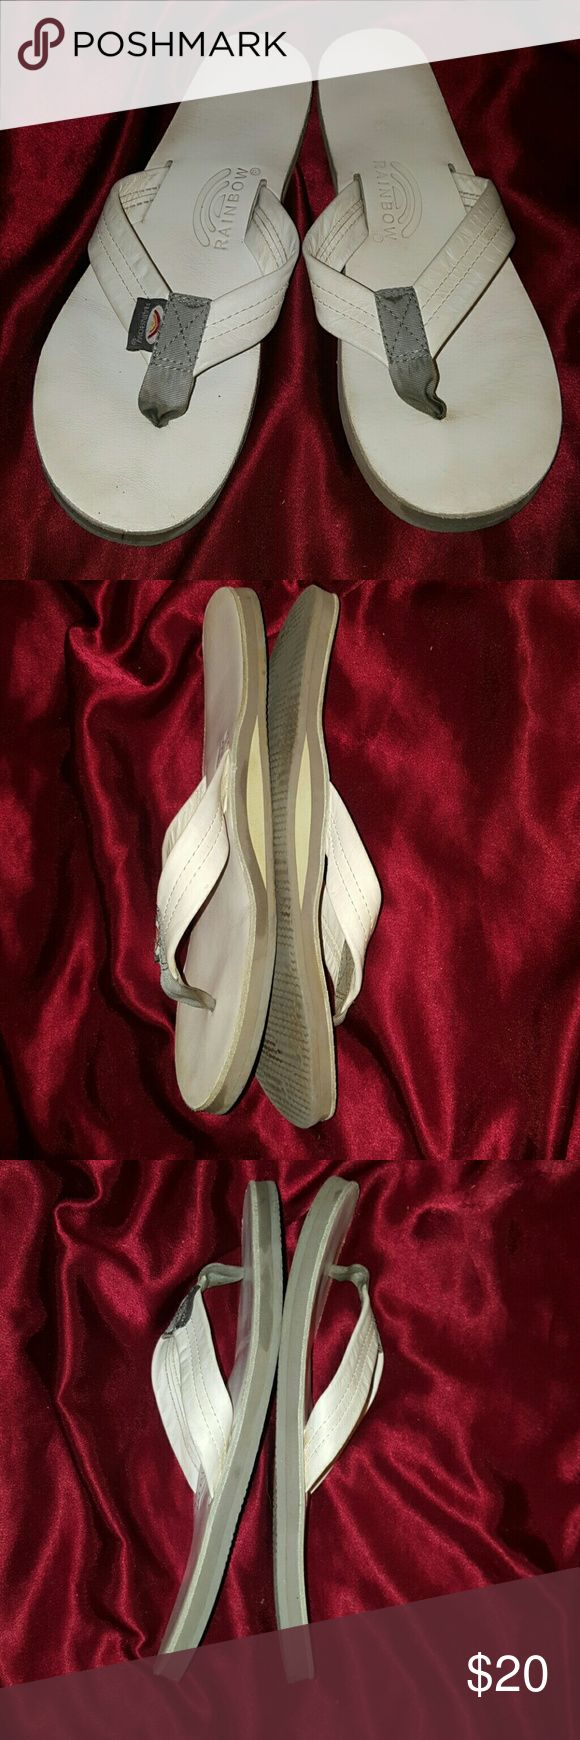 Rainbow white leather flip-flops ladies size 10 This is a pair of rainbow white leather ladies flip flops. They are a size 10. Pre-owned but still in great shape. Rainbow Shoes